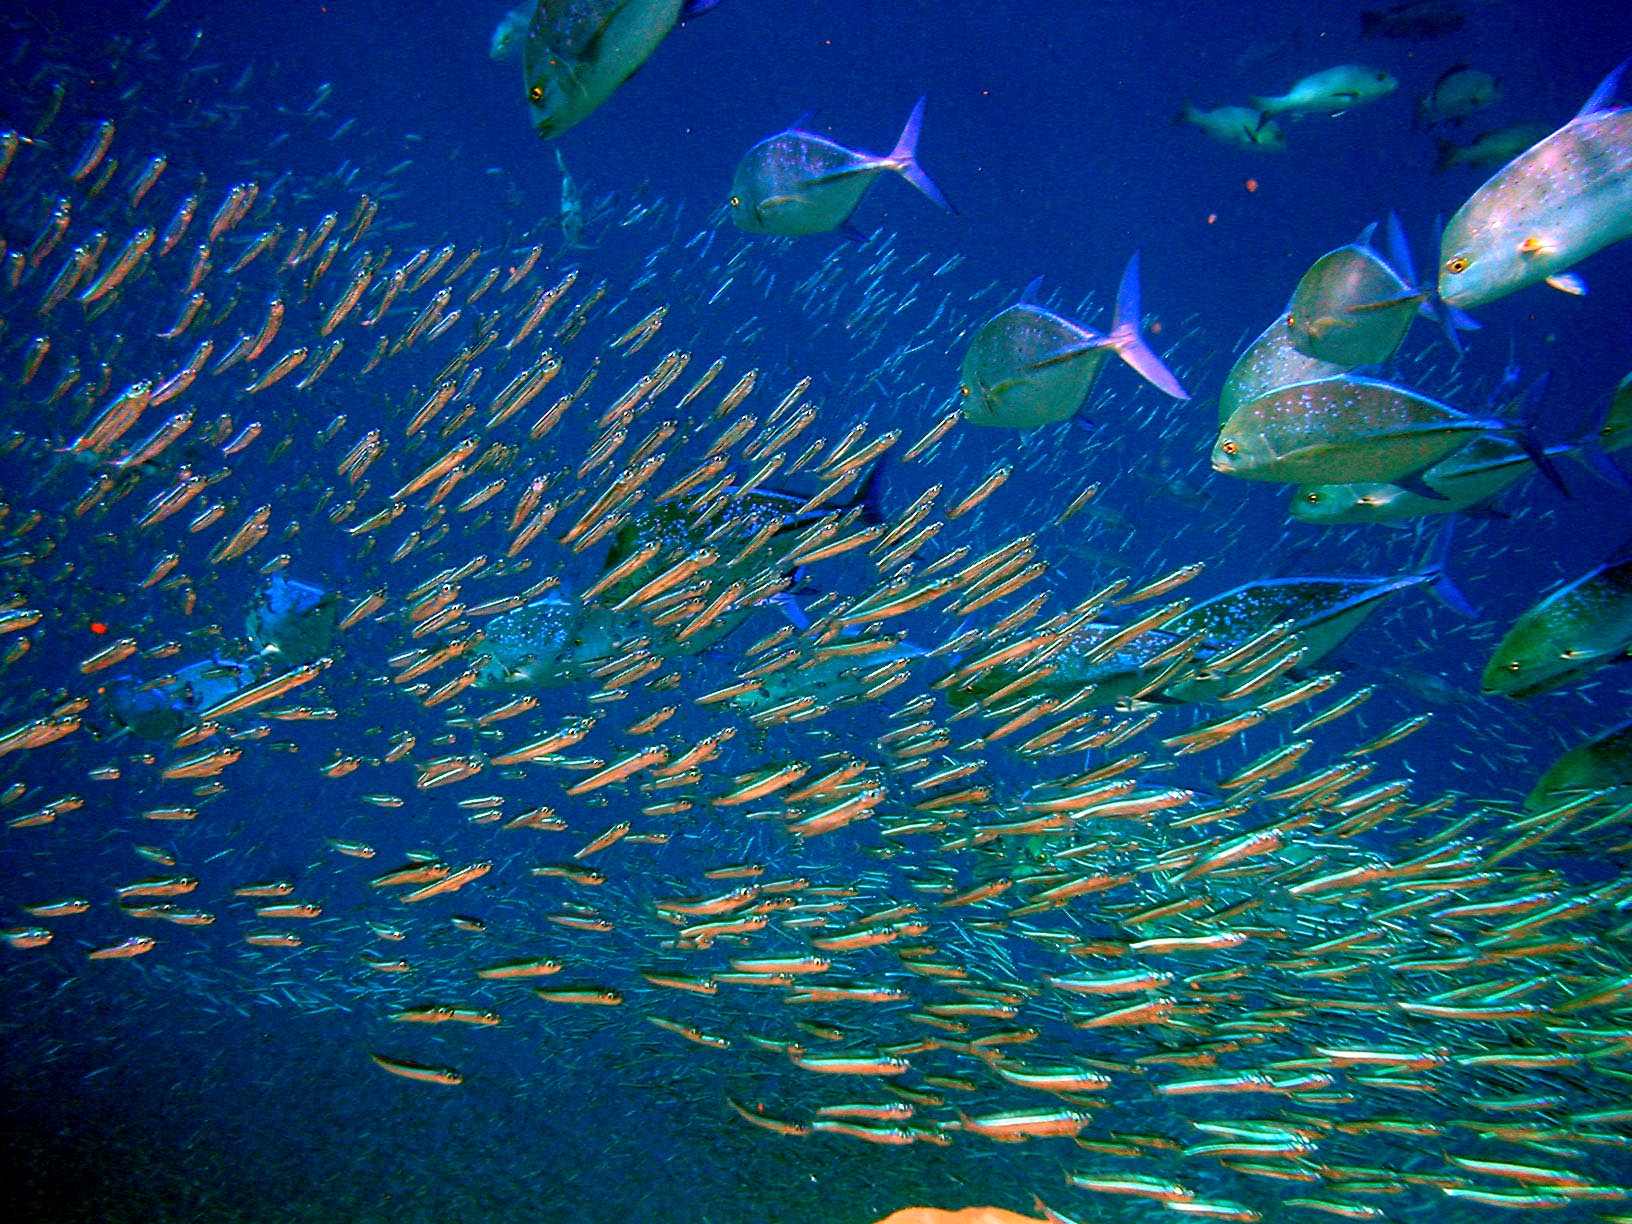 An underwater picture taken in Moofushi Kandu, Maldives, showing a huge amount of fish. Photo taken by Bruno de Giusti